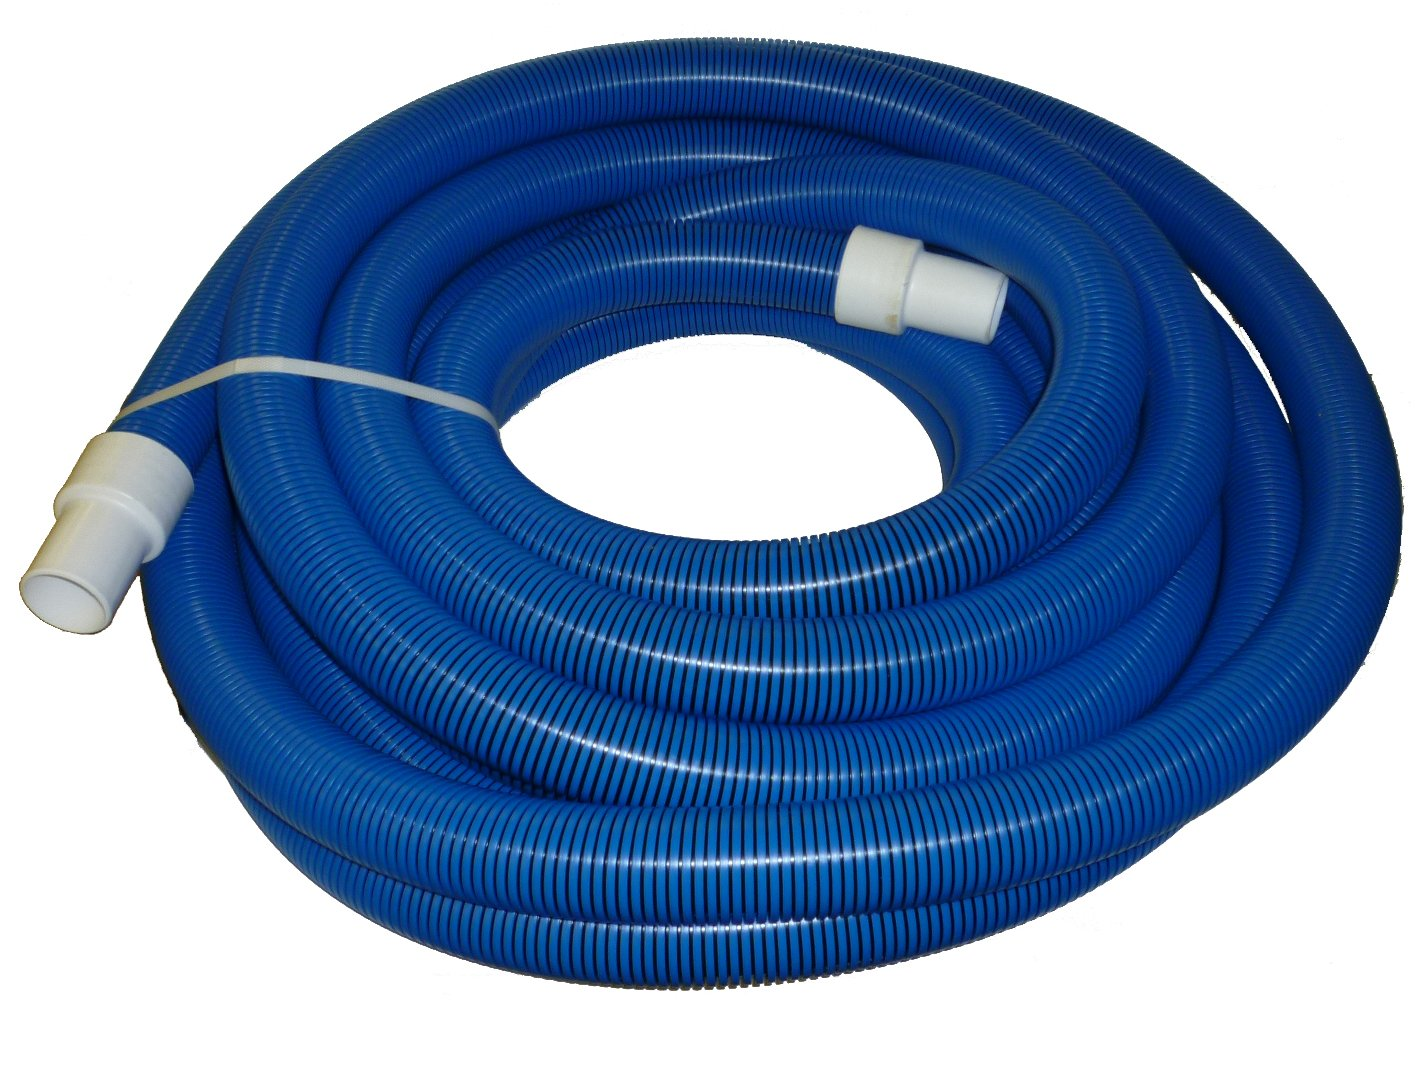 2'' x 50' Blue/Black I-Helix Commercial TM Vacuum Hose with White Cuffs